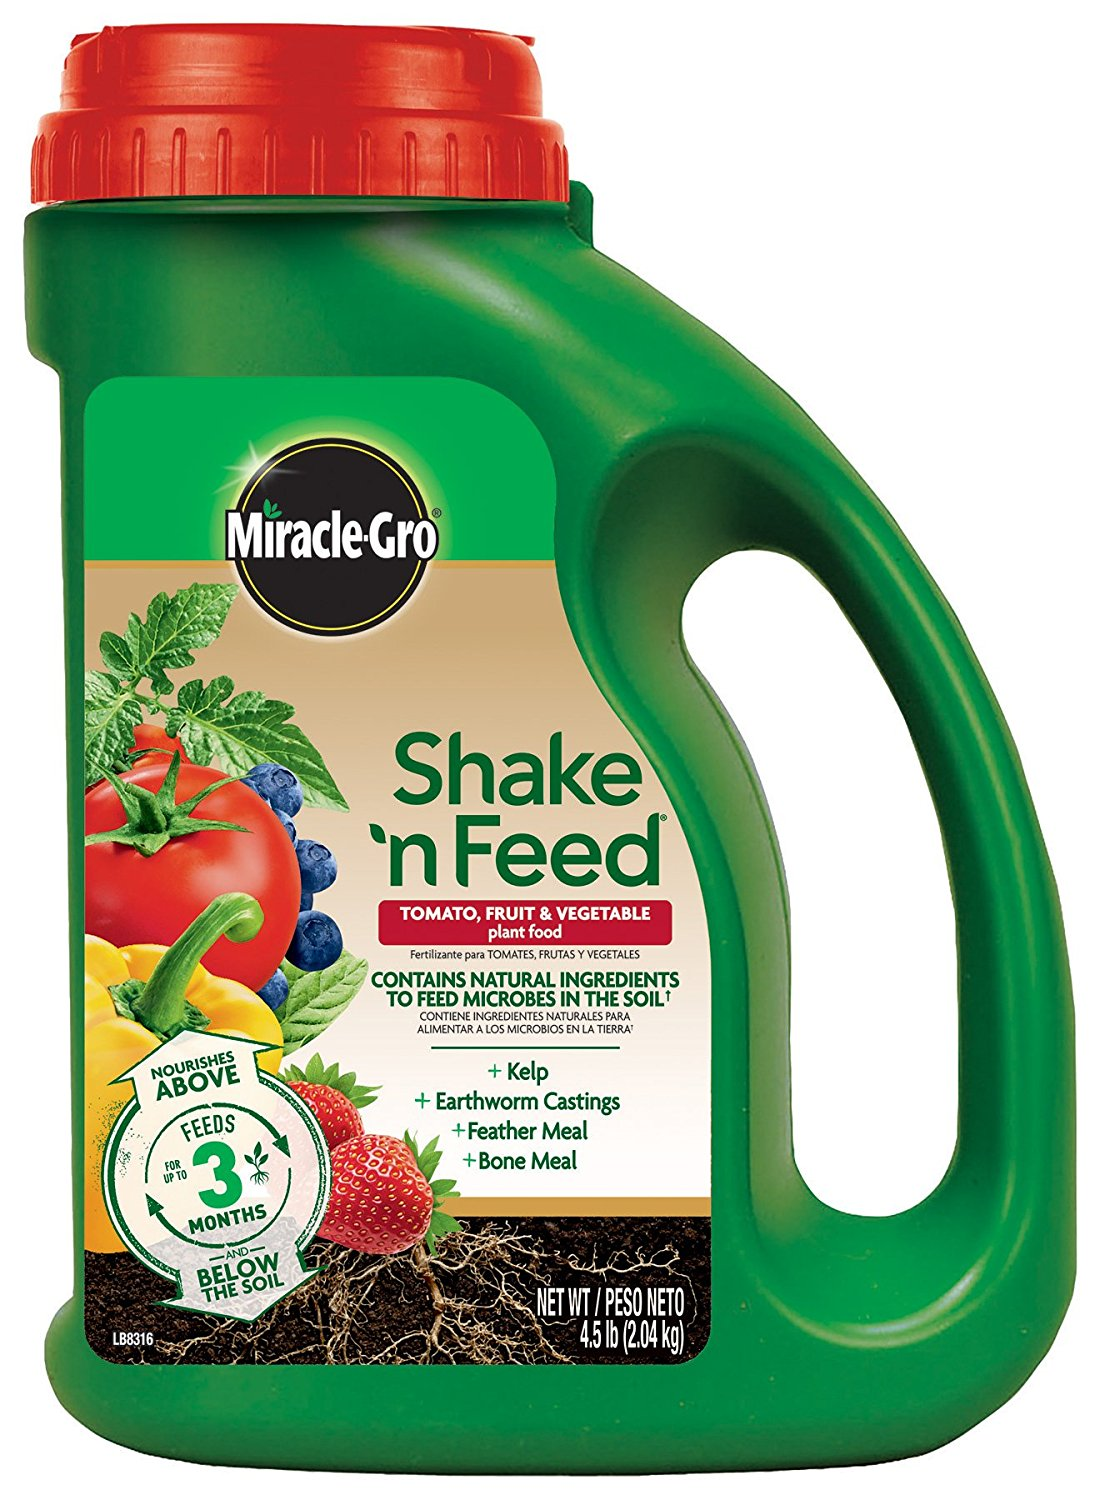 Miracle-Gro 3002610 Shake 'N Feed Tomato, Fruits & Vegetables Continuous Release Plant Food Plus Calcium